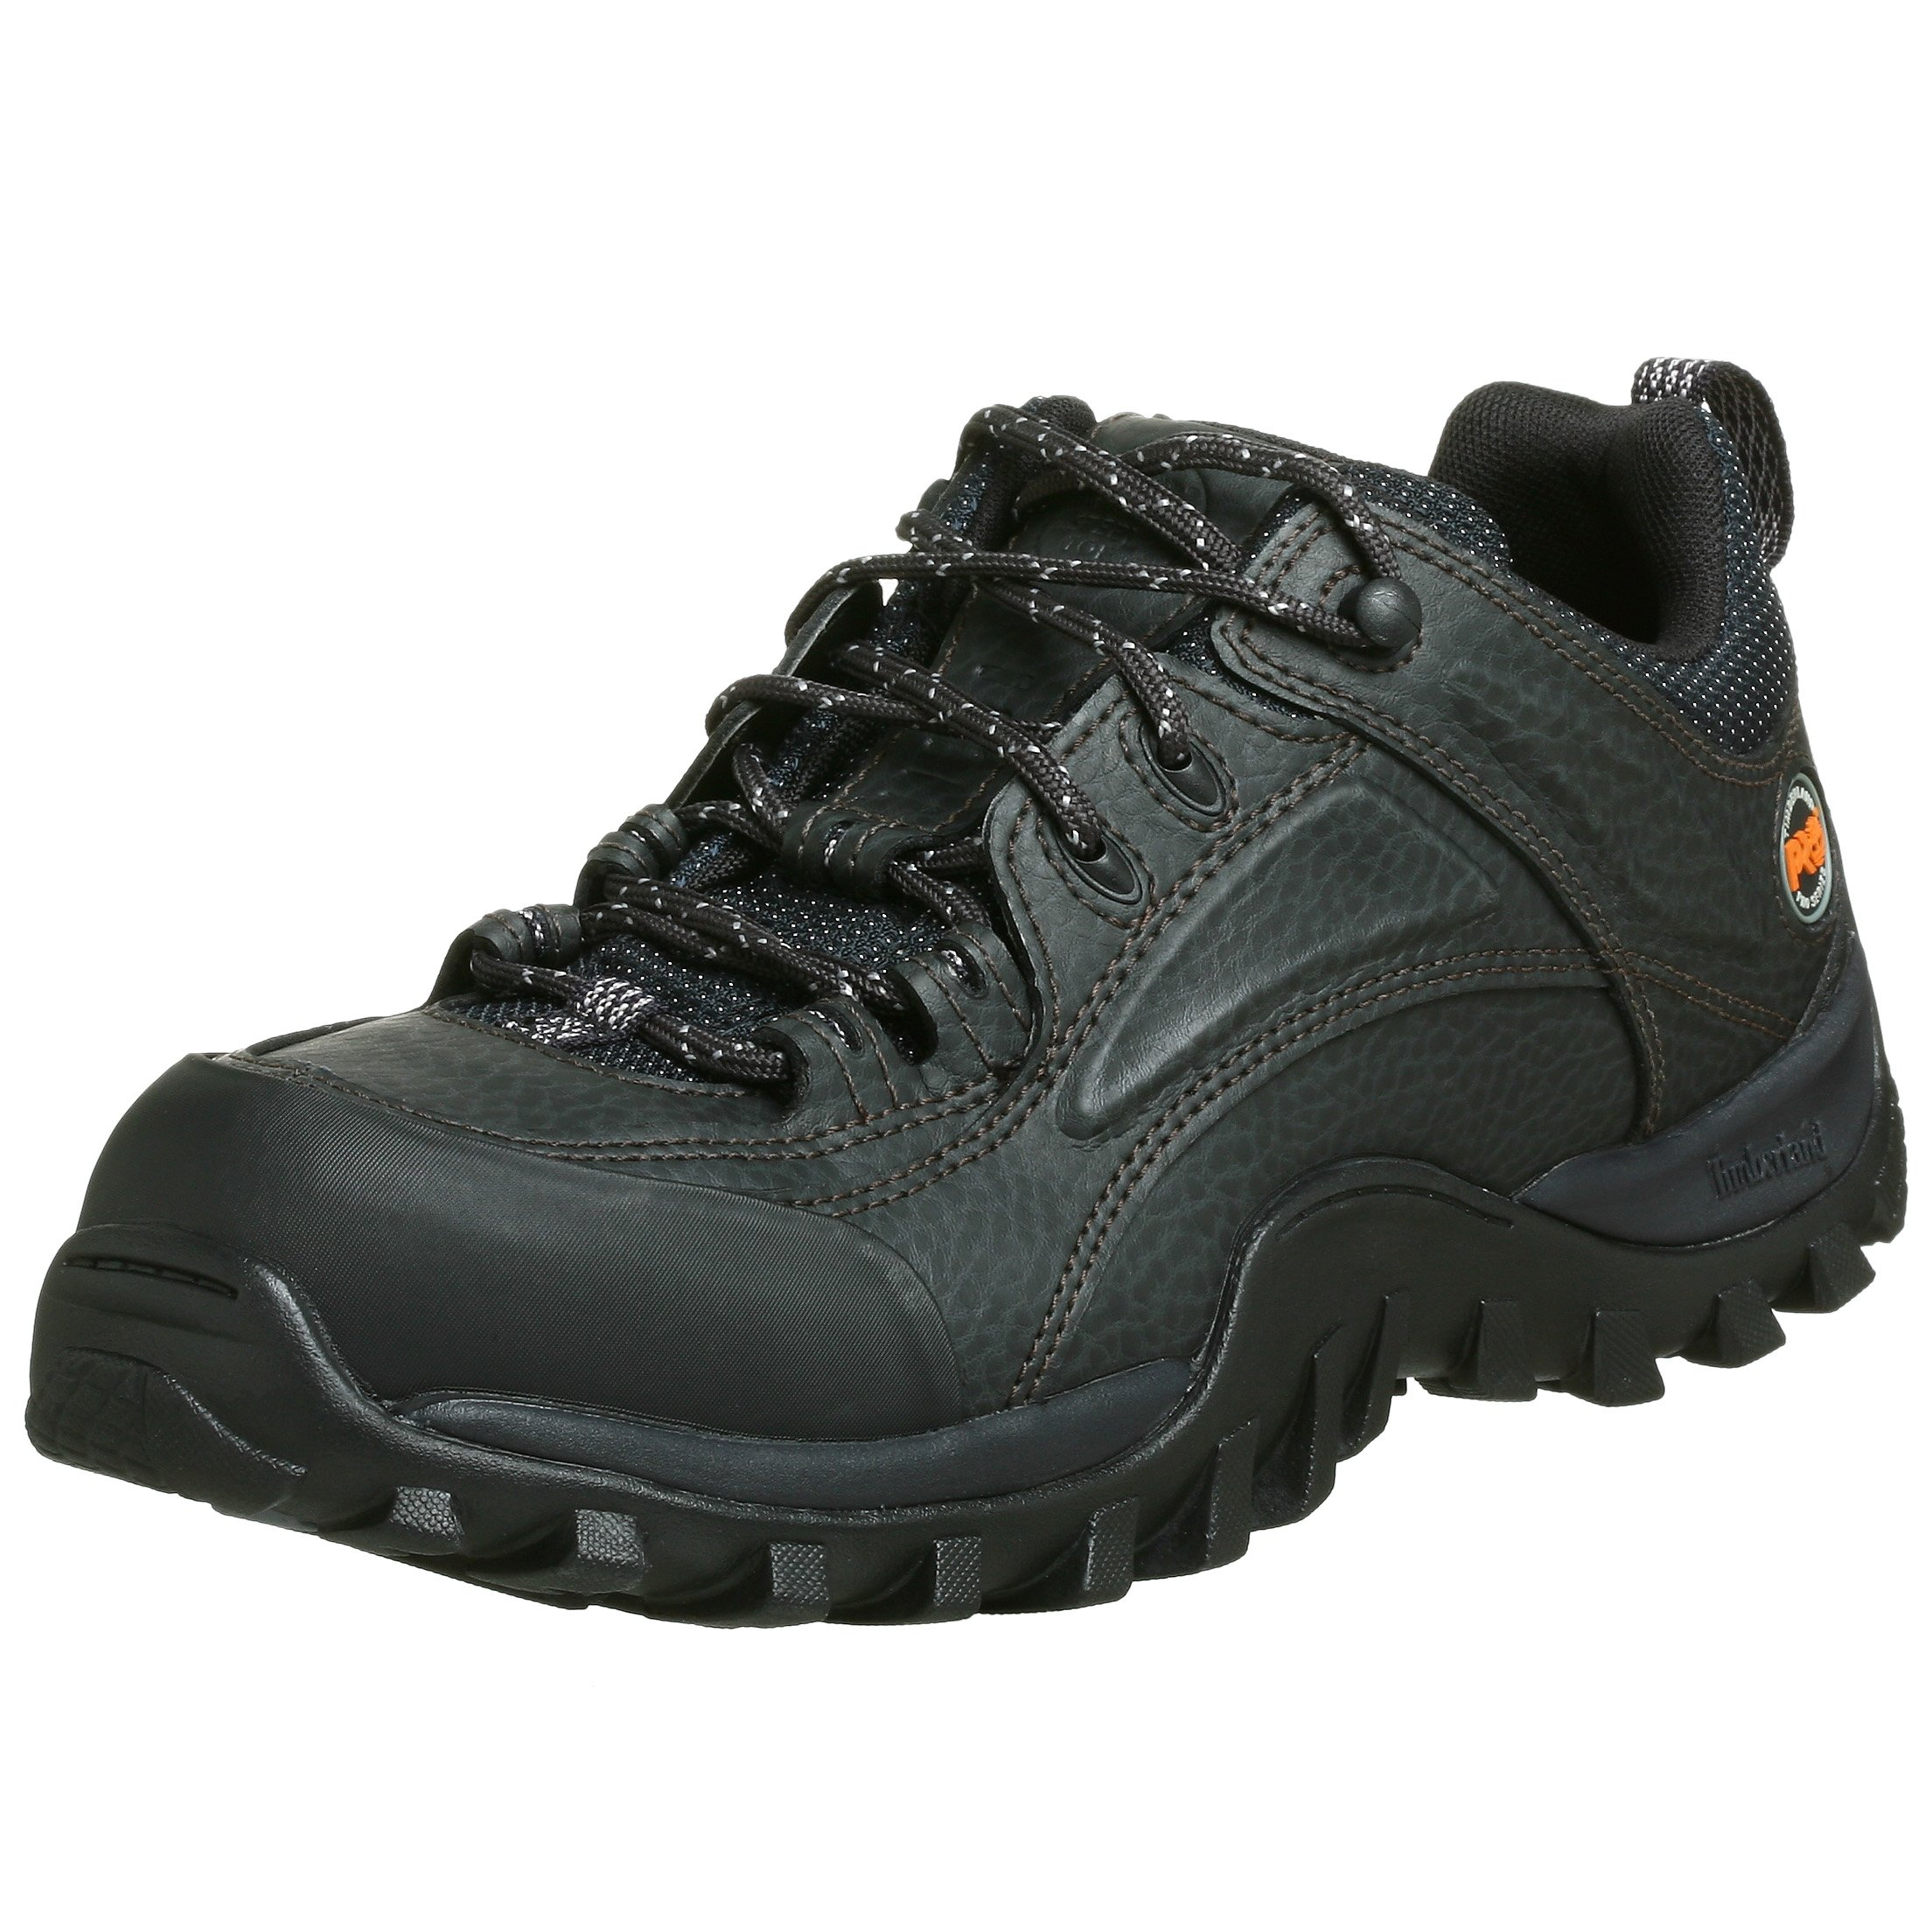 Timberland PRO Men's 40008 Mudsill Low Steel-Toe Lace-Up,Black,10 M